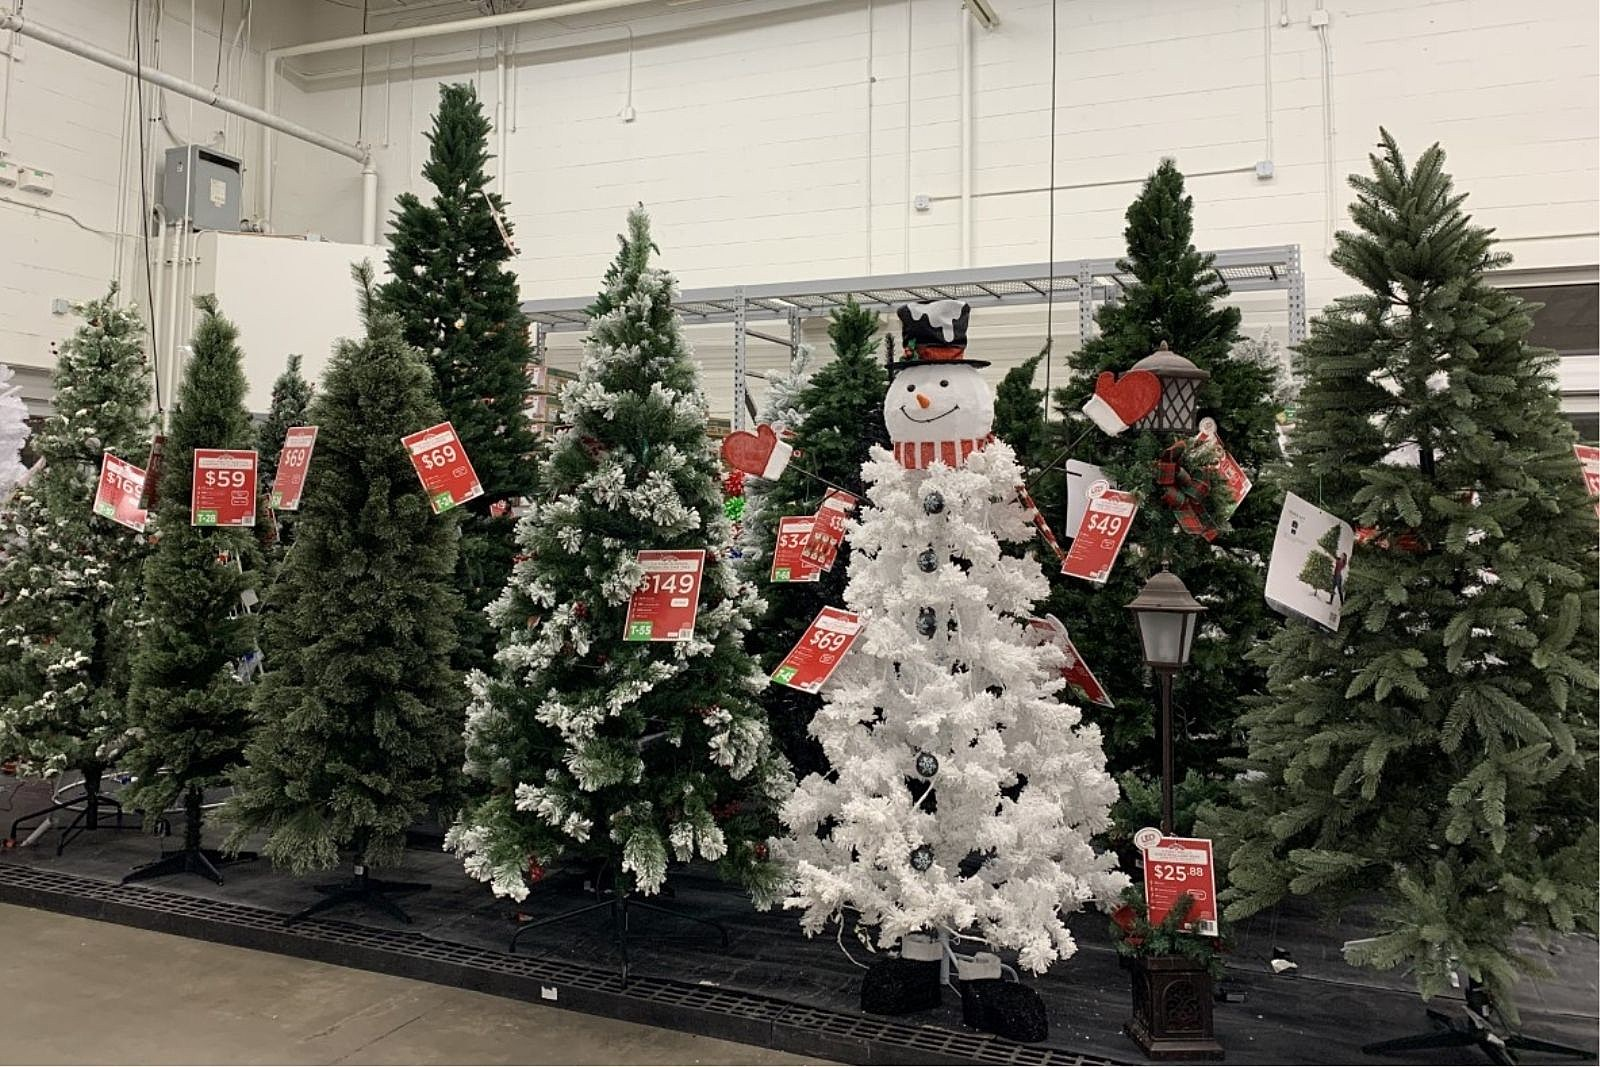 When To Put Up Christmas Decorations 2020 Grand Junction   Are You Ready to Put Up Christmas Decorations?